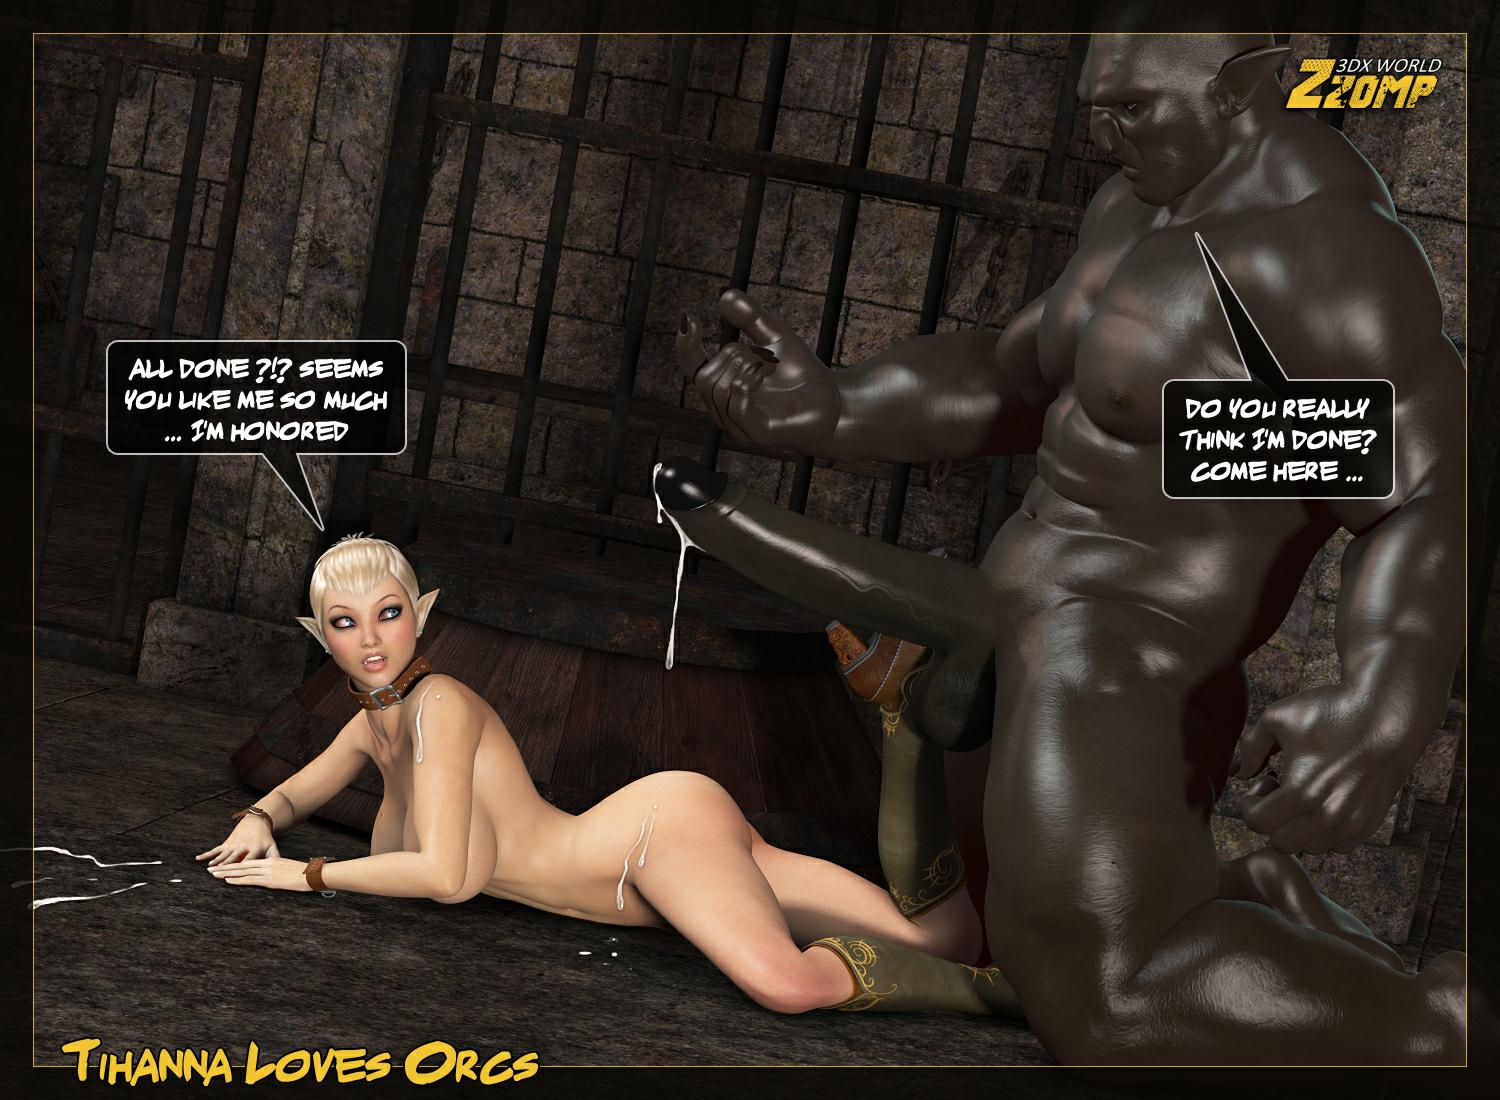 Zzomp- Tihanna loves Orcs Queen Is Back - part 5